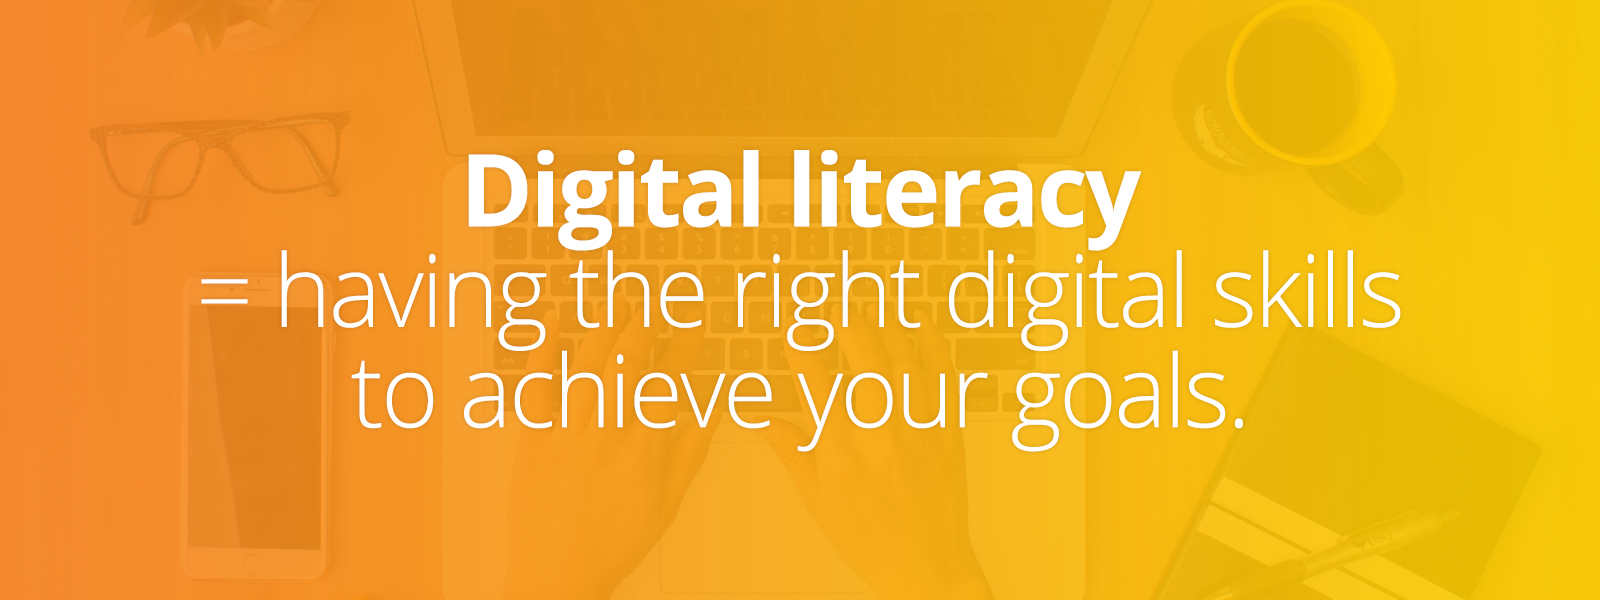 Digital literacy means having the right digital skills to achieve your goals.